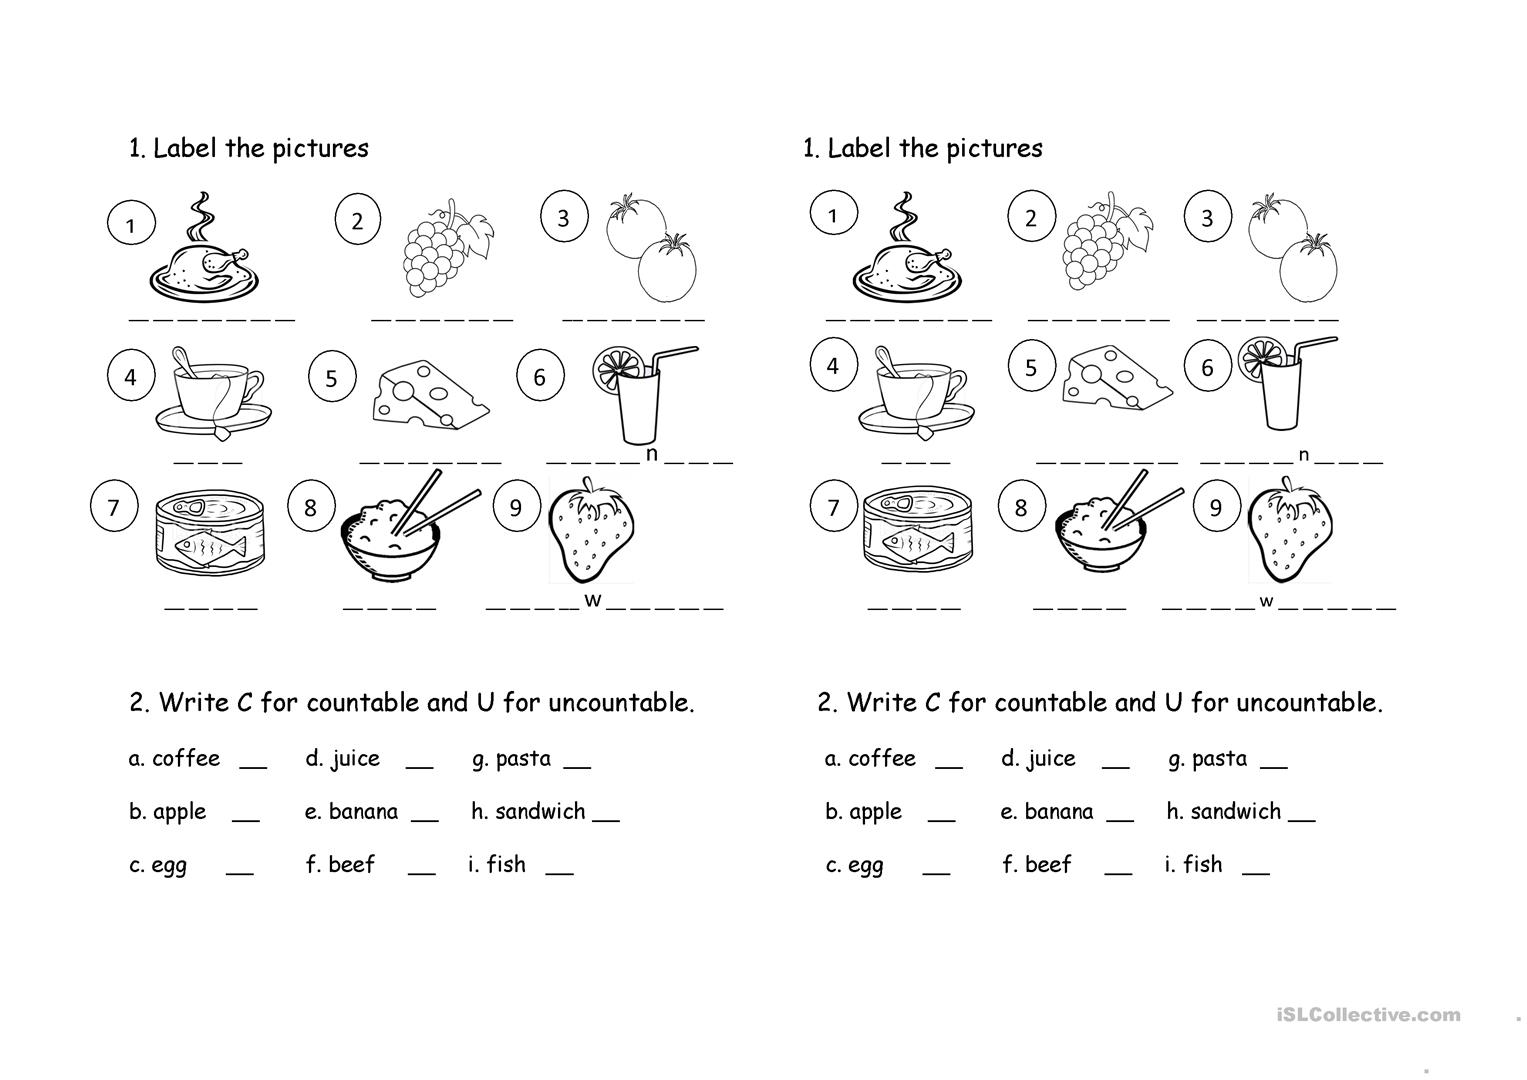 food-worksheet-picture-description-exercises-tests_96857_1 Teaching Countable And Uncountable Nouns To Beginners on cake chicken, exercises pdf, worksheets grade 5, exercises intermediate, 4th grade worksheets, english practice, worksheets for grade 1, worksheet for kids,